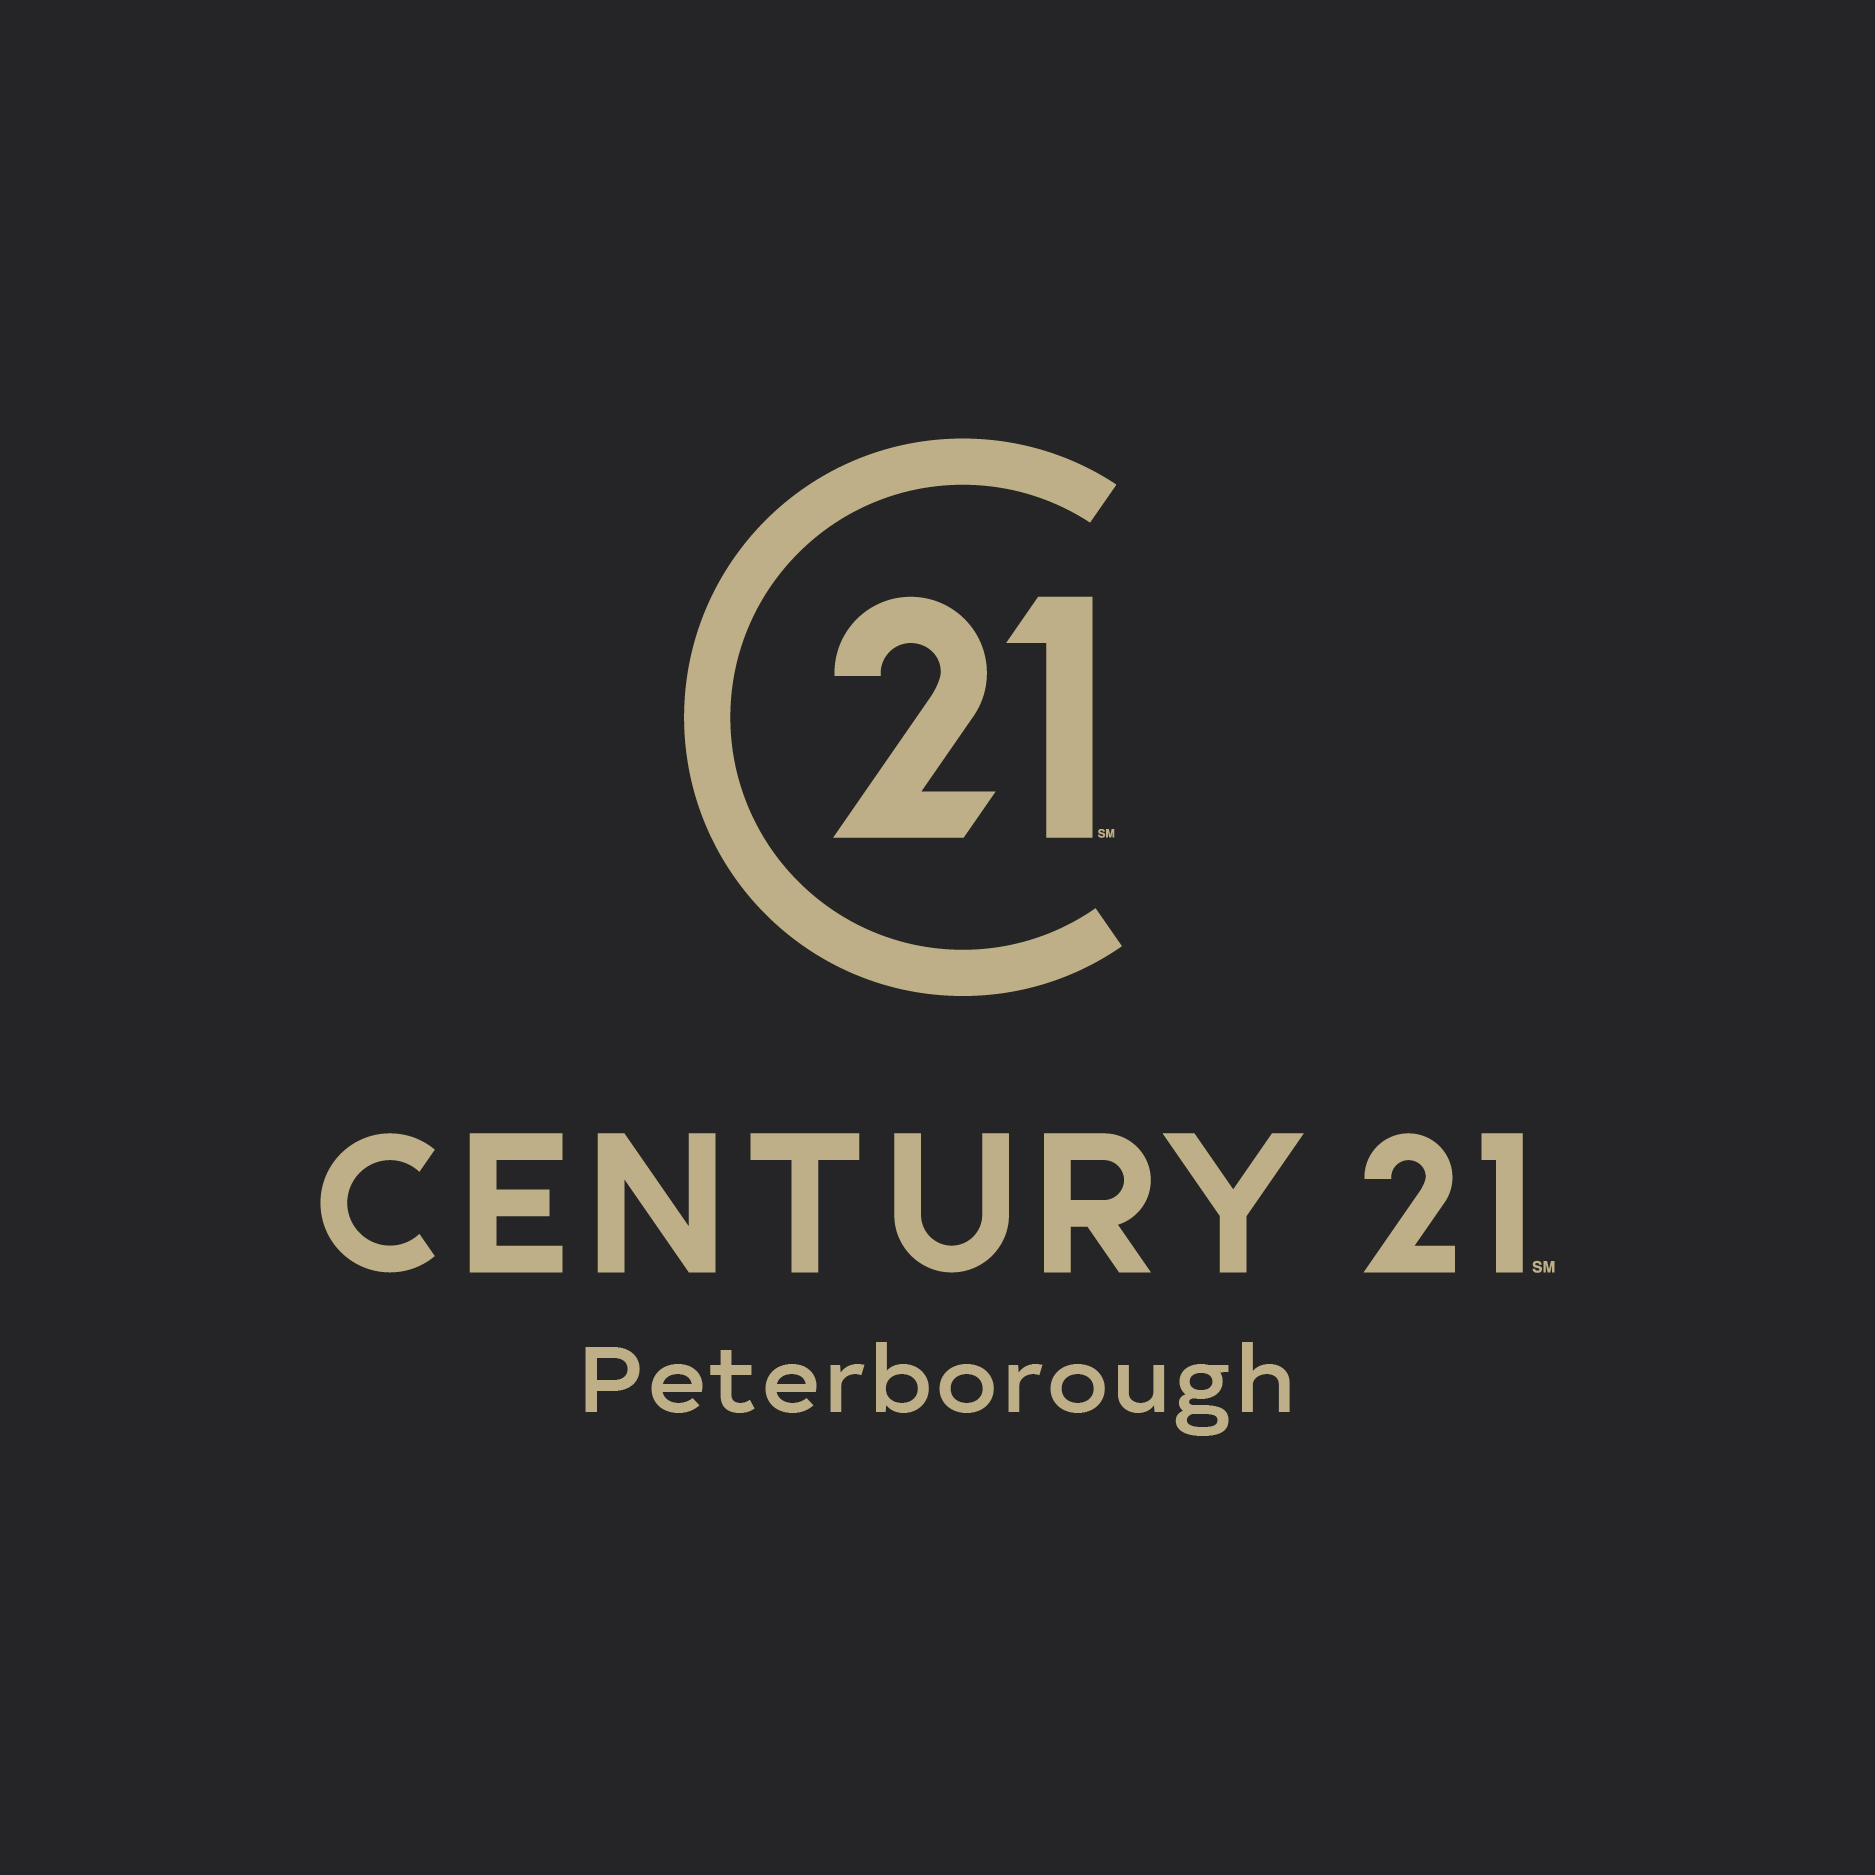 Century 21 - Peterborough